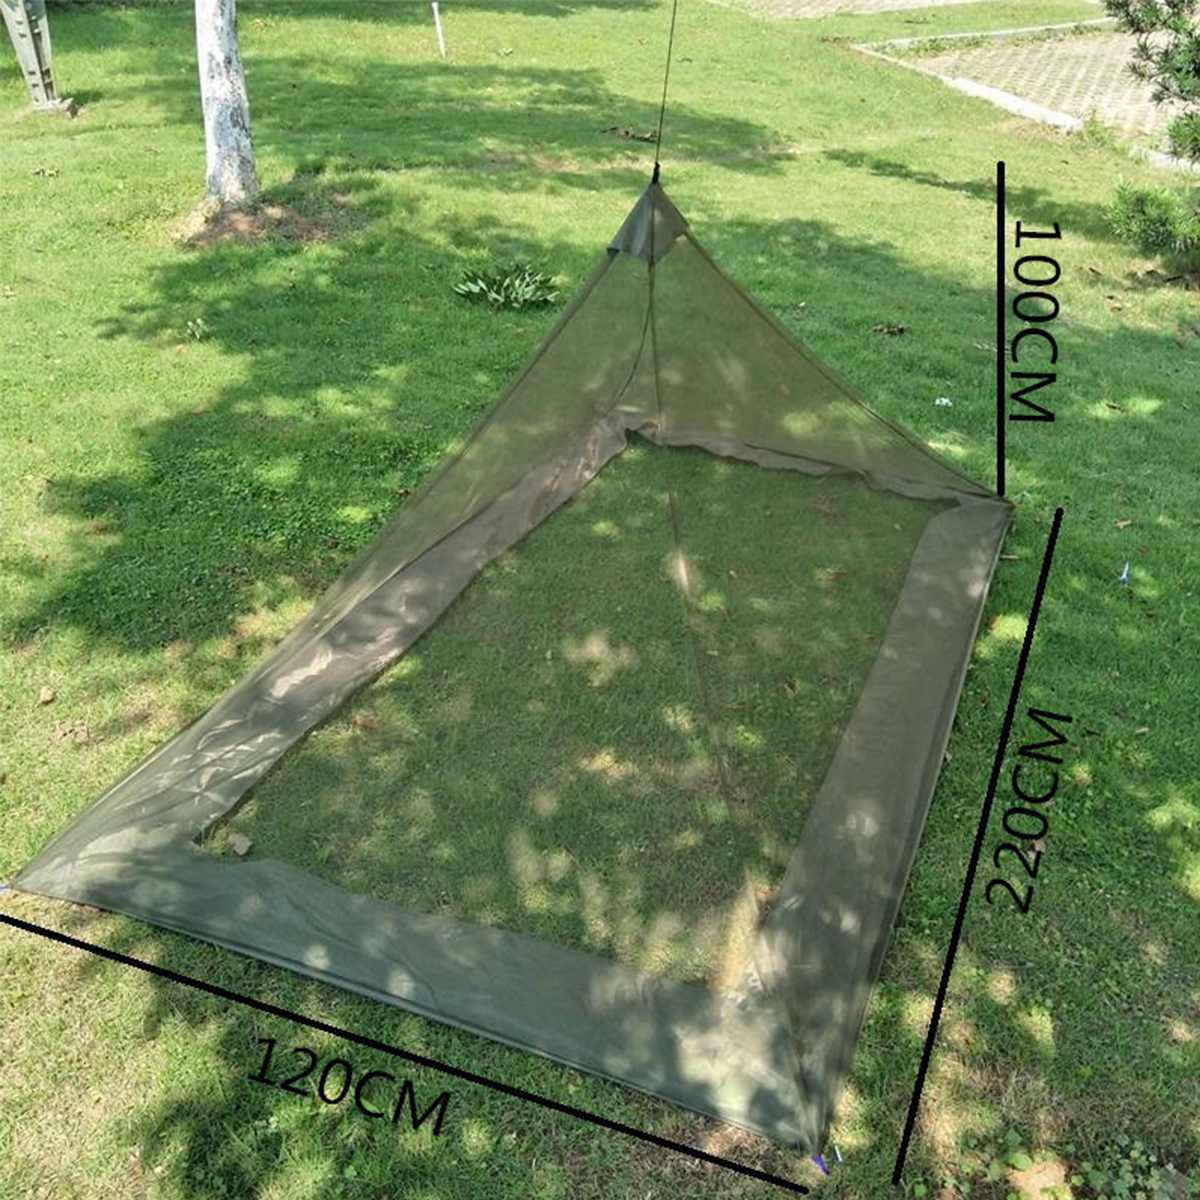 Summer Outdoor Mosquito Net Camping Tent for Adults Children Protector Insect Fly Mosquito Bed Tent Travel Camping 220X120X100cm - AliExpress - 11.11_Double 11_Singles Day - 웹